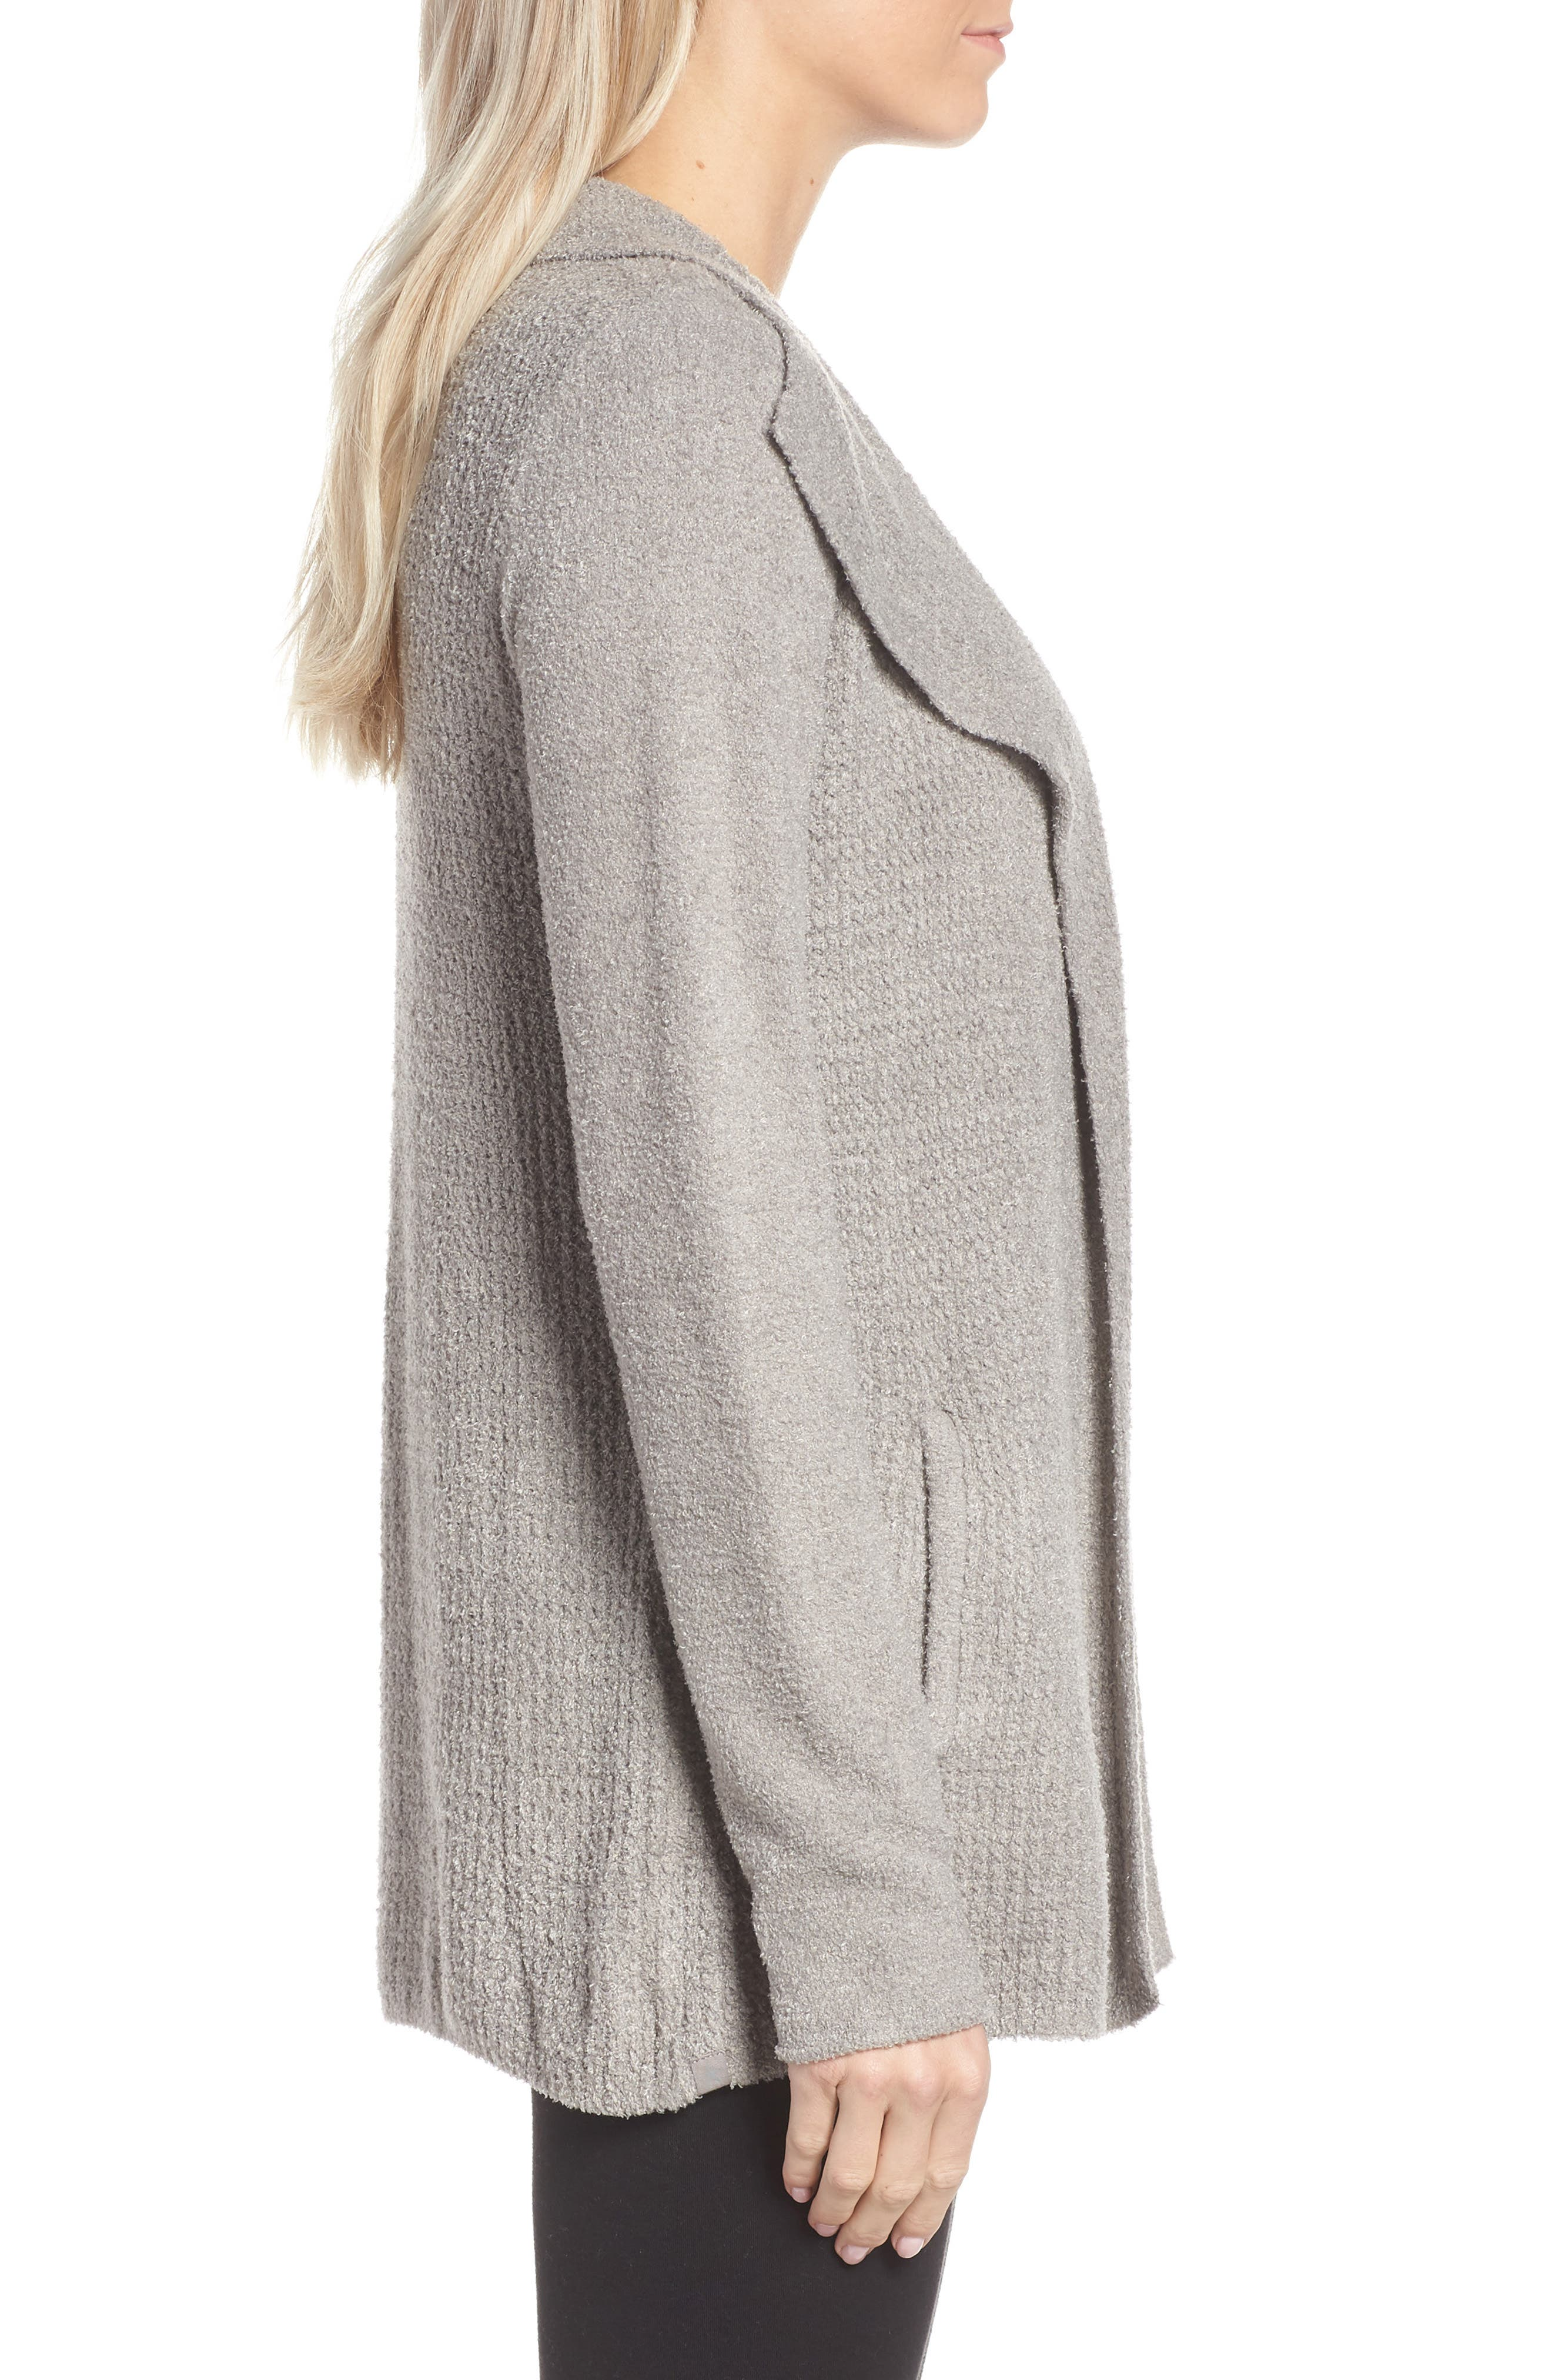 Cozychic<sup>®</sup> Lite Coastal Cardigan,                             Alternate thumbnail 3, color,                             PEWTER